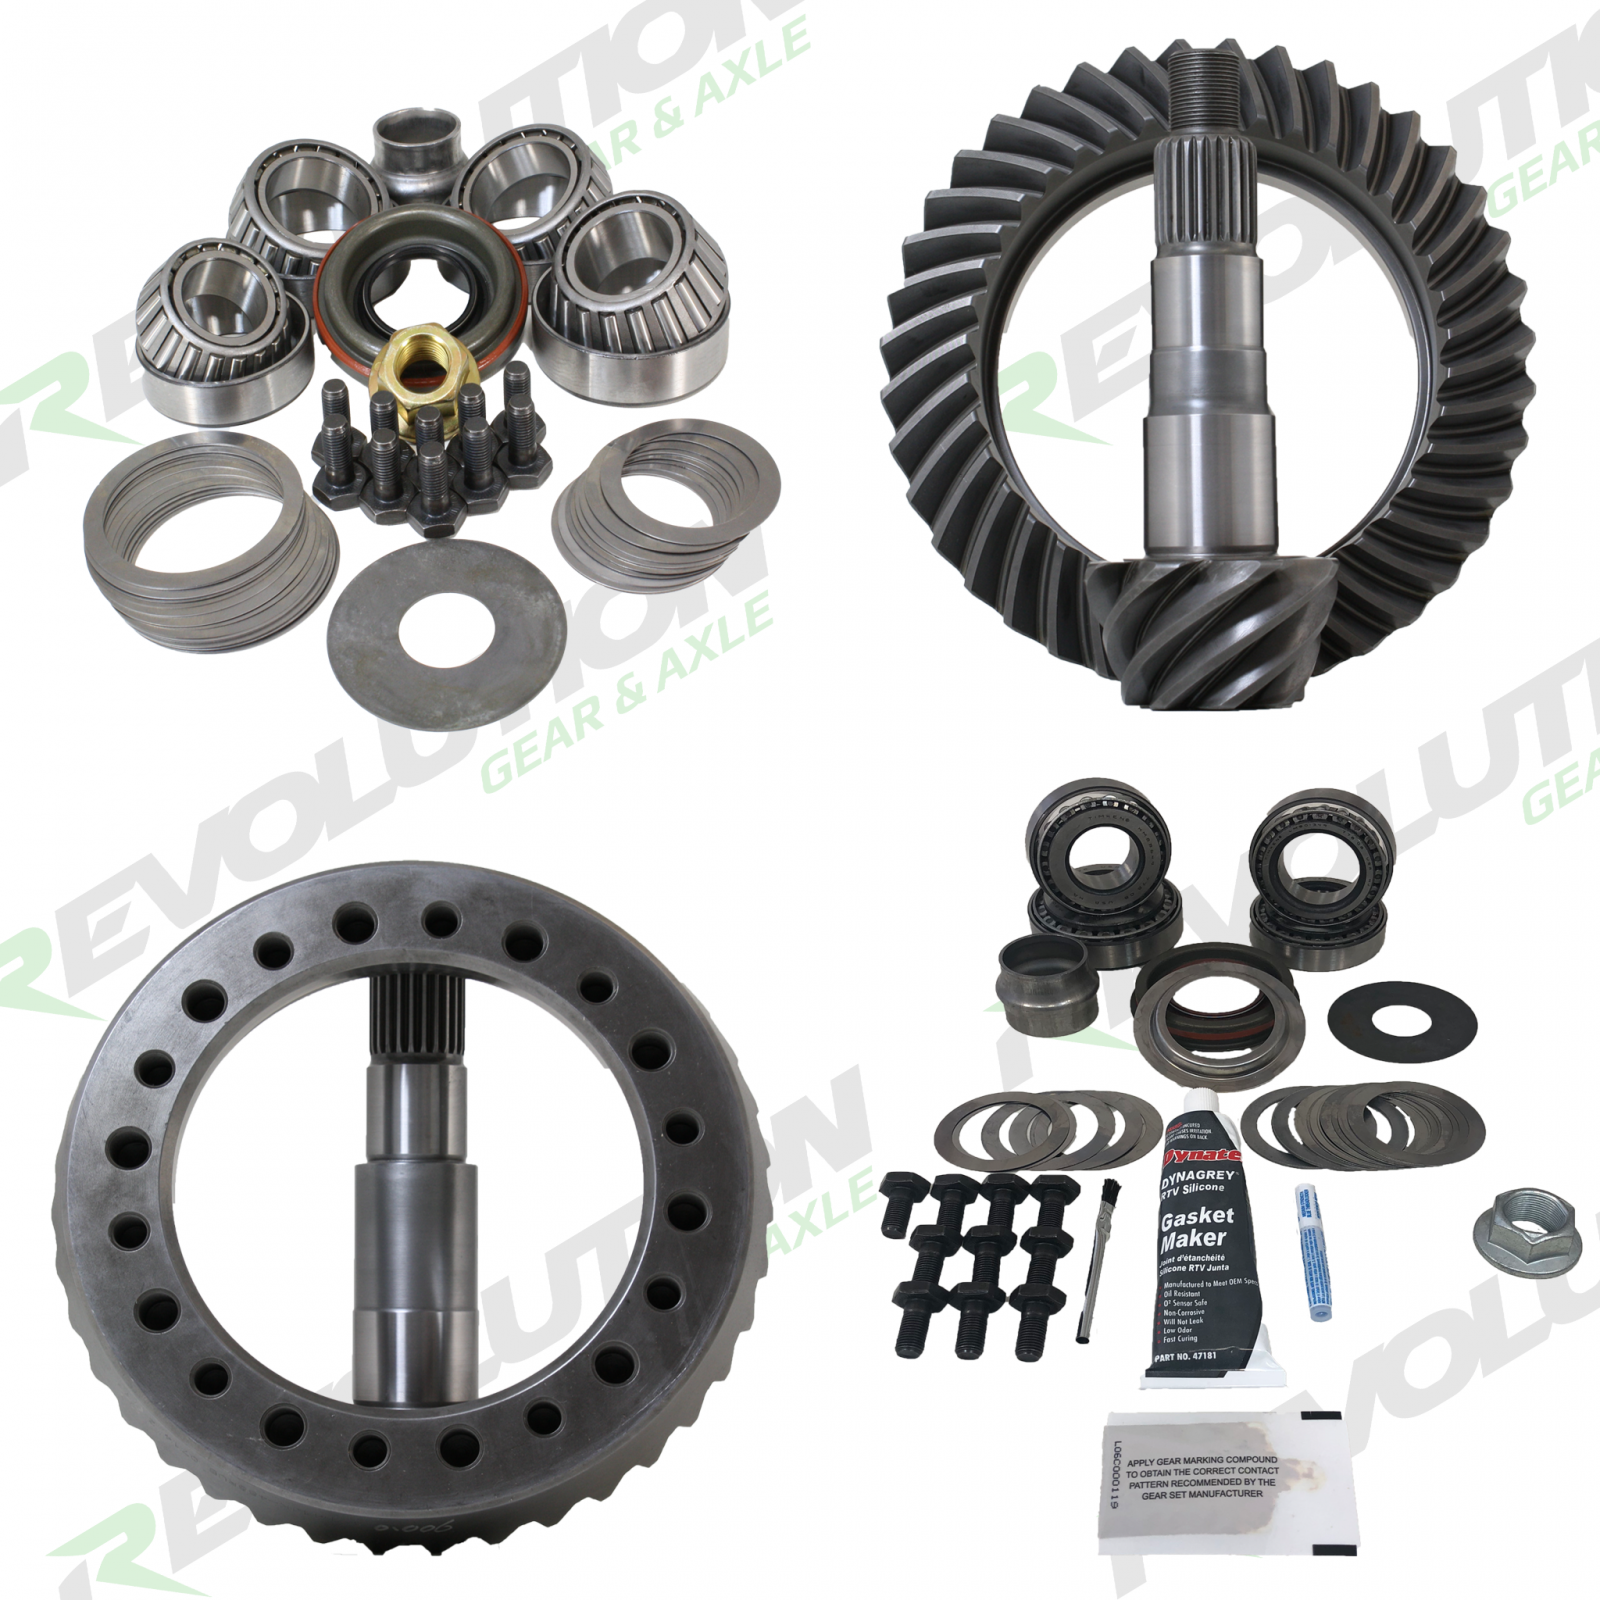 Toyota Land Cruiser 1991-97 4.88 Gear Package (T9.5-T8 Reverse) with Factory Locker Revolution Gear and Axle - HQ Offroad